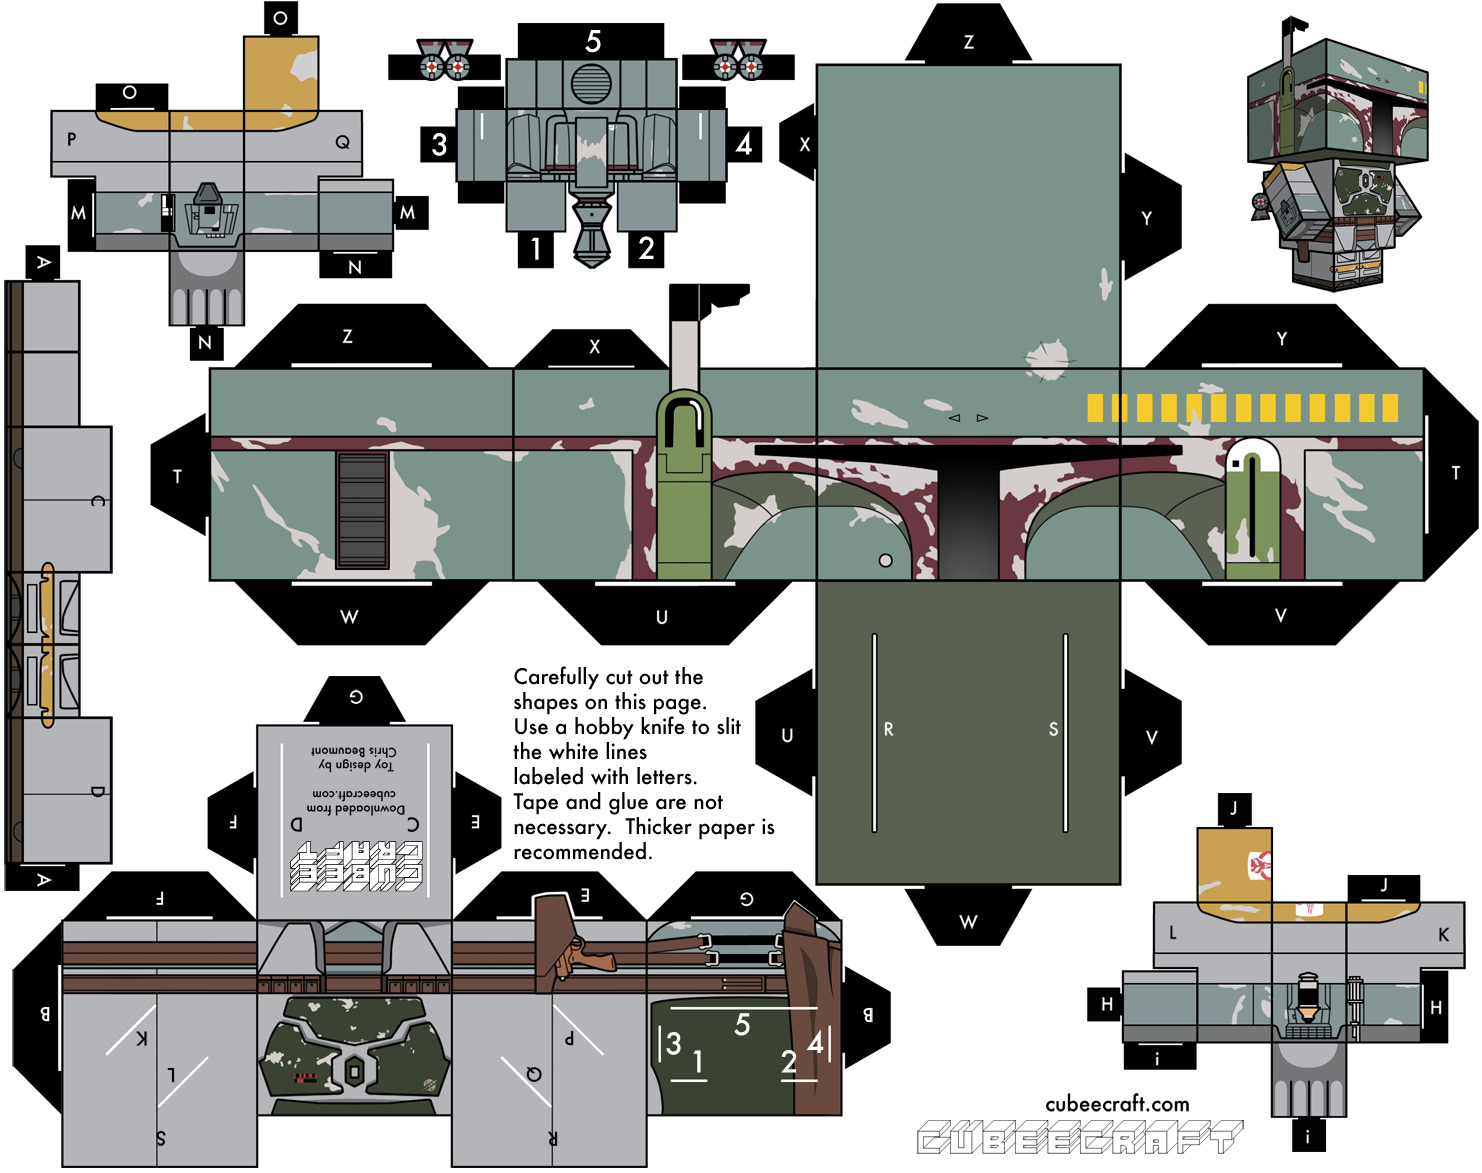 paper shock boba fett star wars by cubeecraft. Black Bedroom Furniture Sets. Home Design Ideas